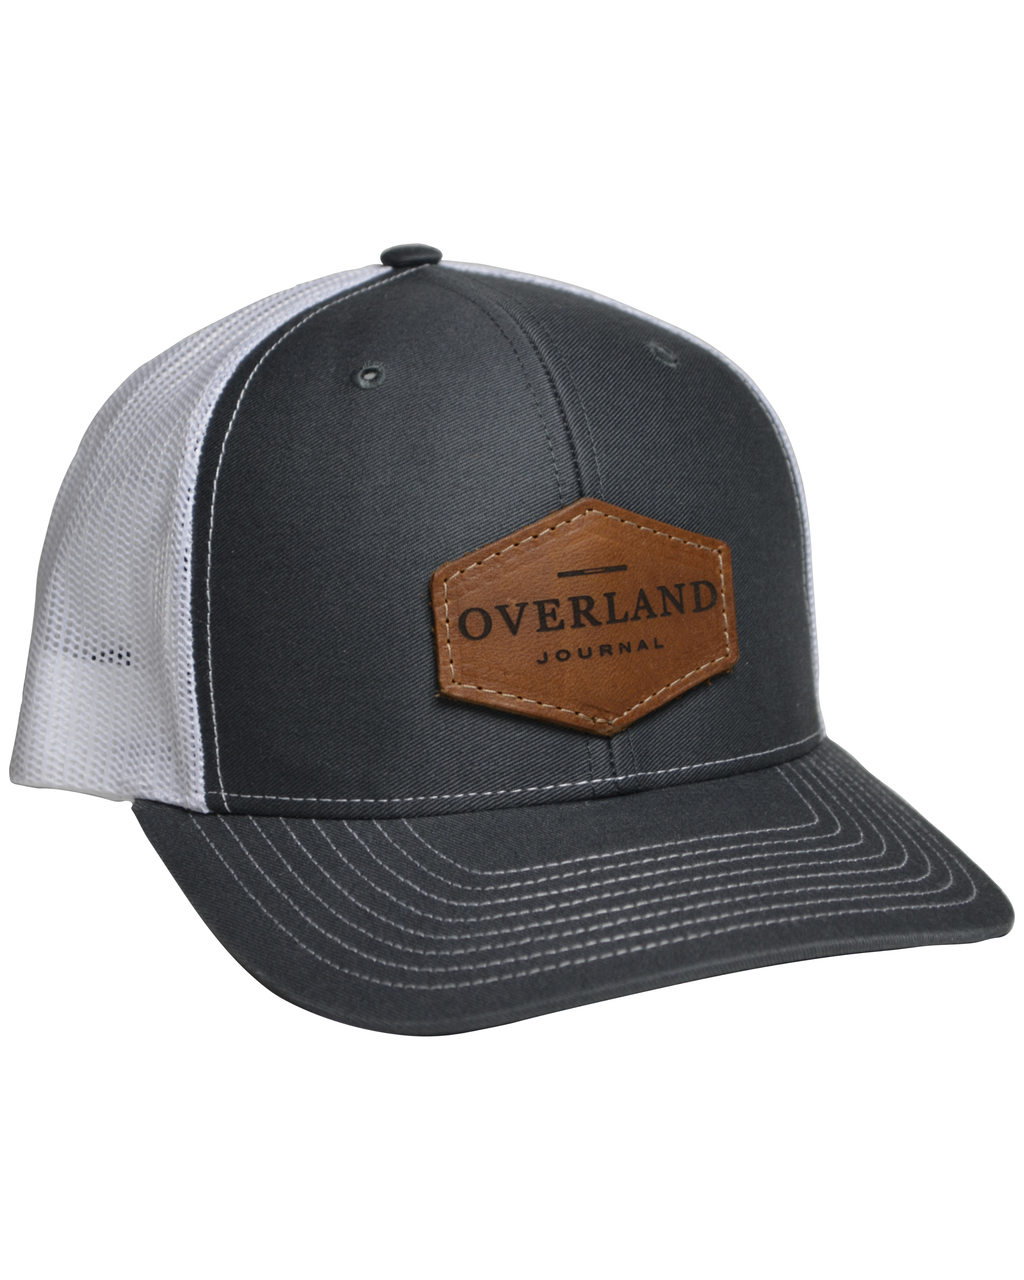 Overland Journal Hat with Leather Patch - Overland Journal 1ac093bc9f5